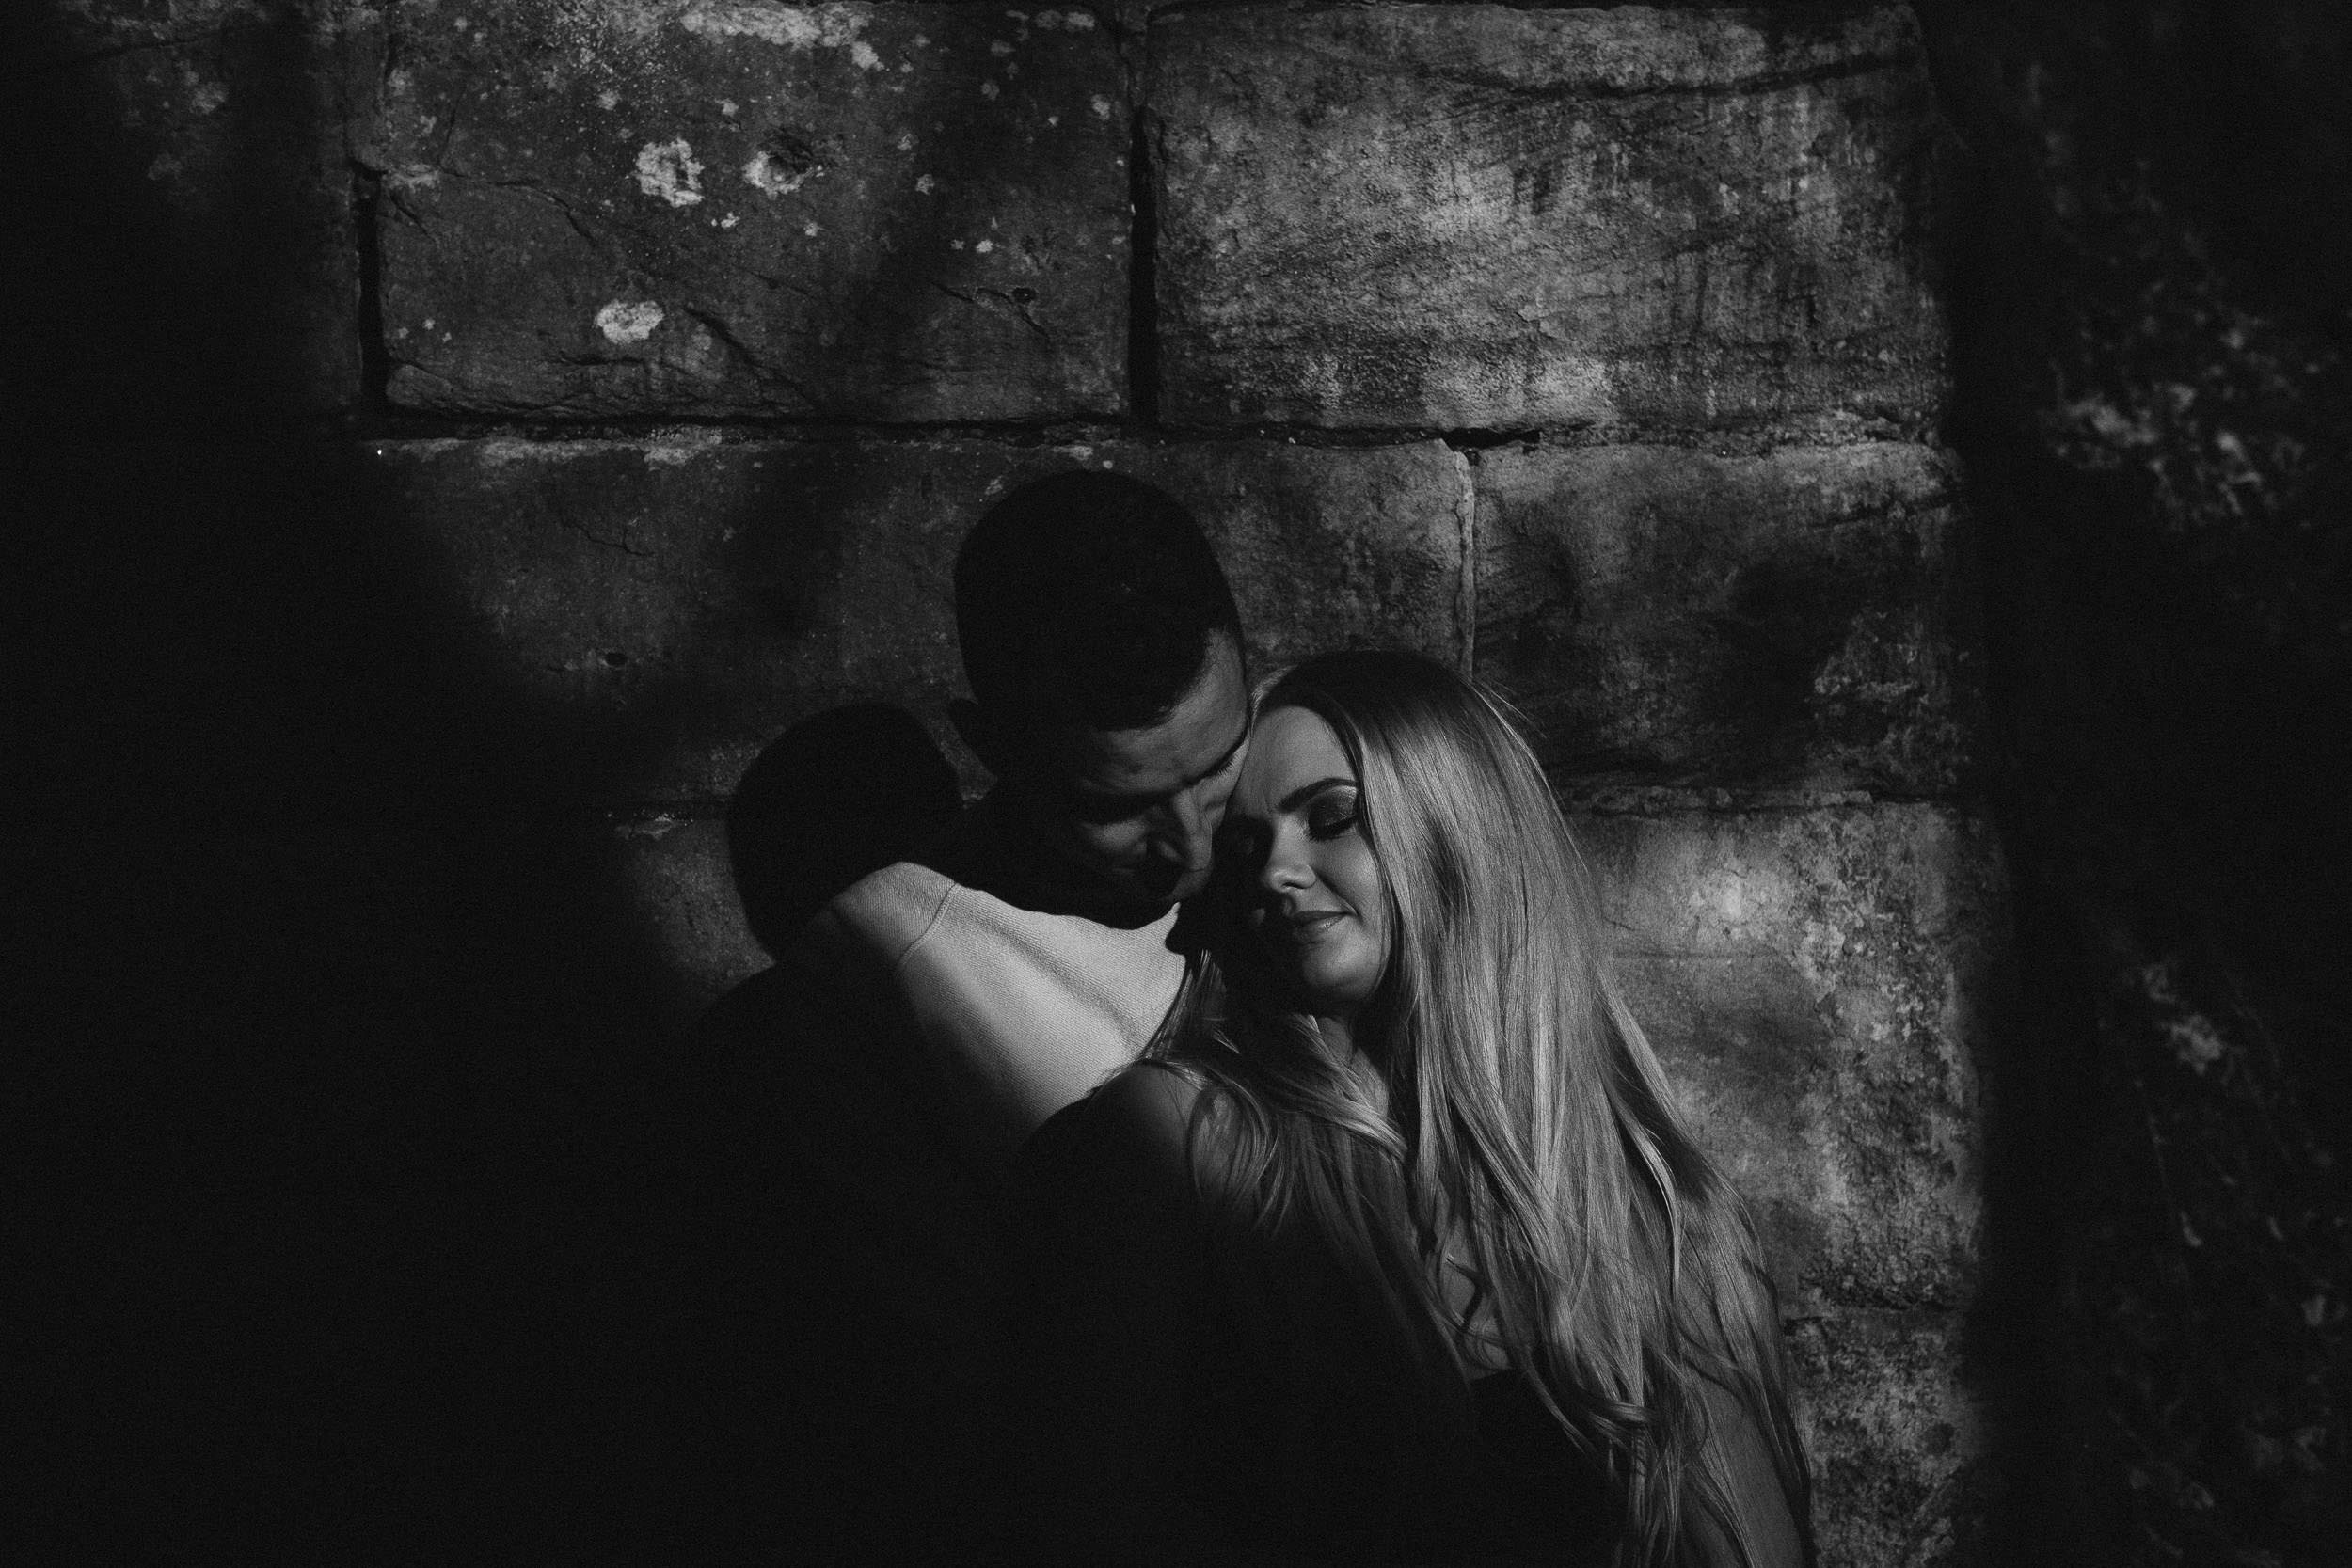 Moody black and white photo of couple leaning against rough wall in deep shadow